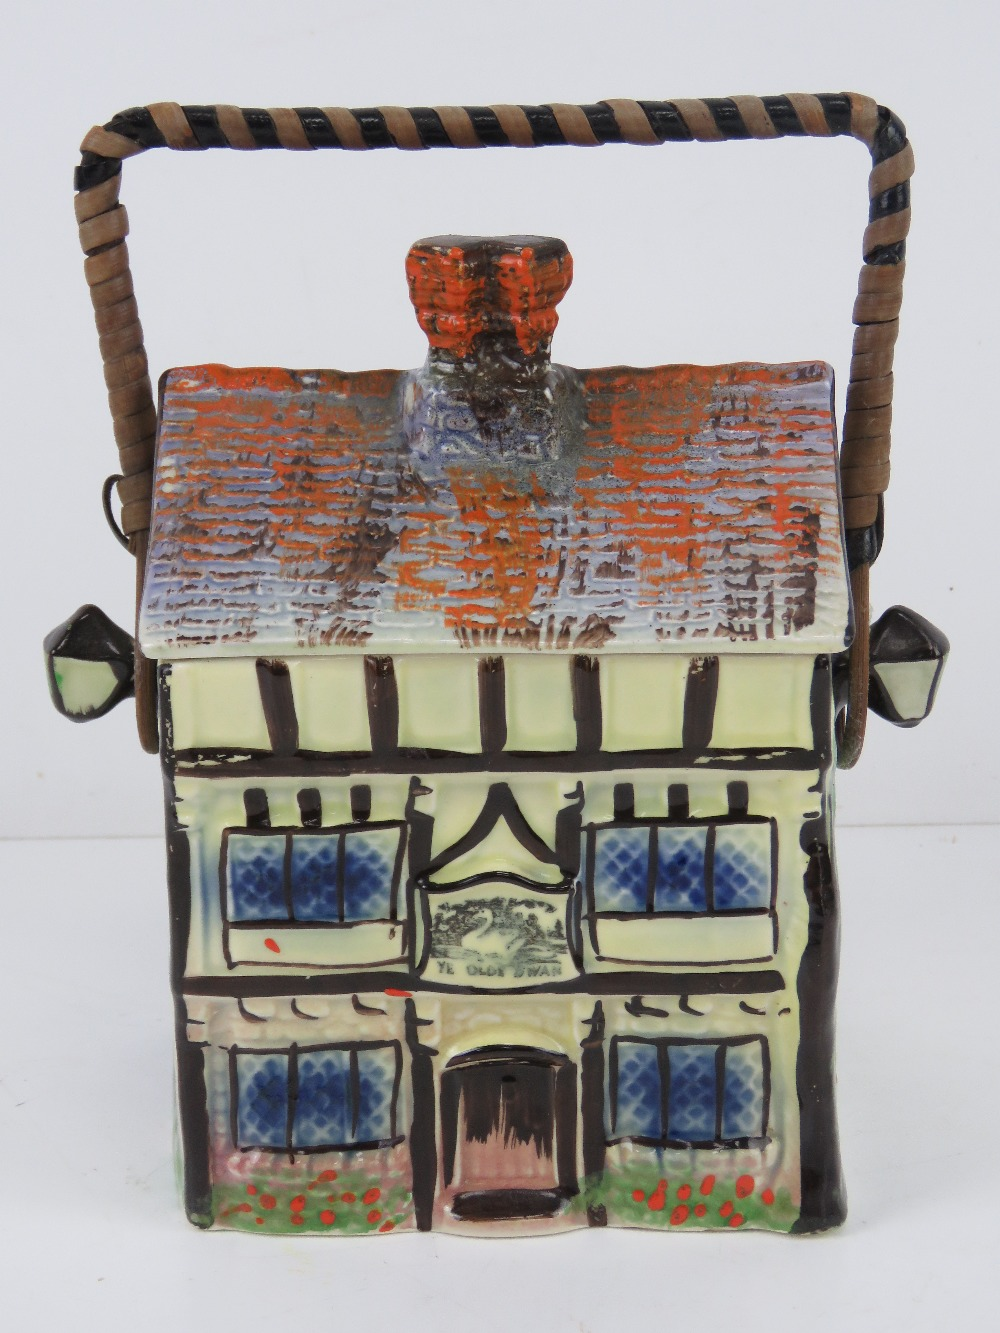 A hand painted ceramic wafer / biscuit barrel in the form of a beamed house 'Ye Olde Inne'.